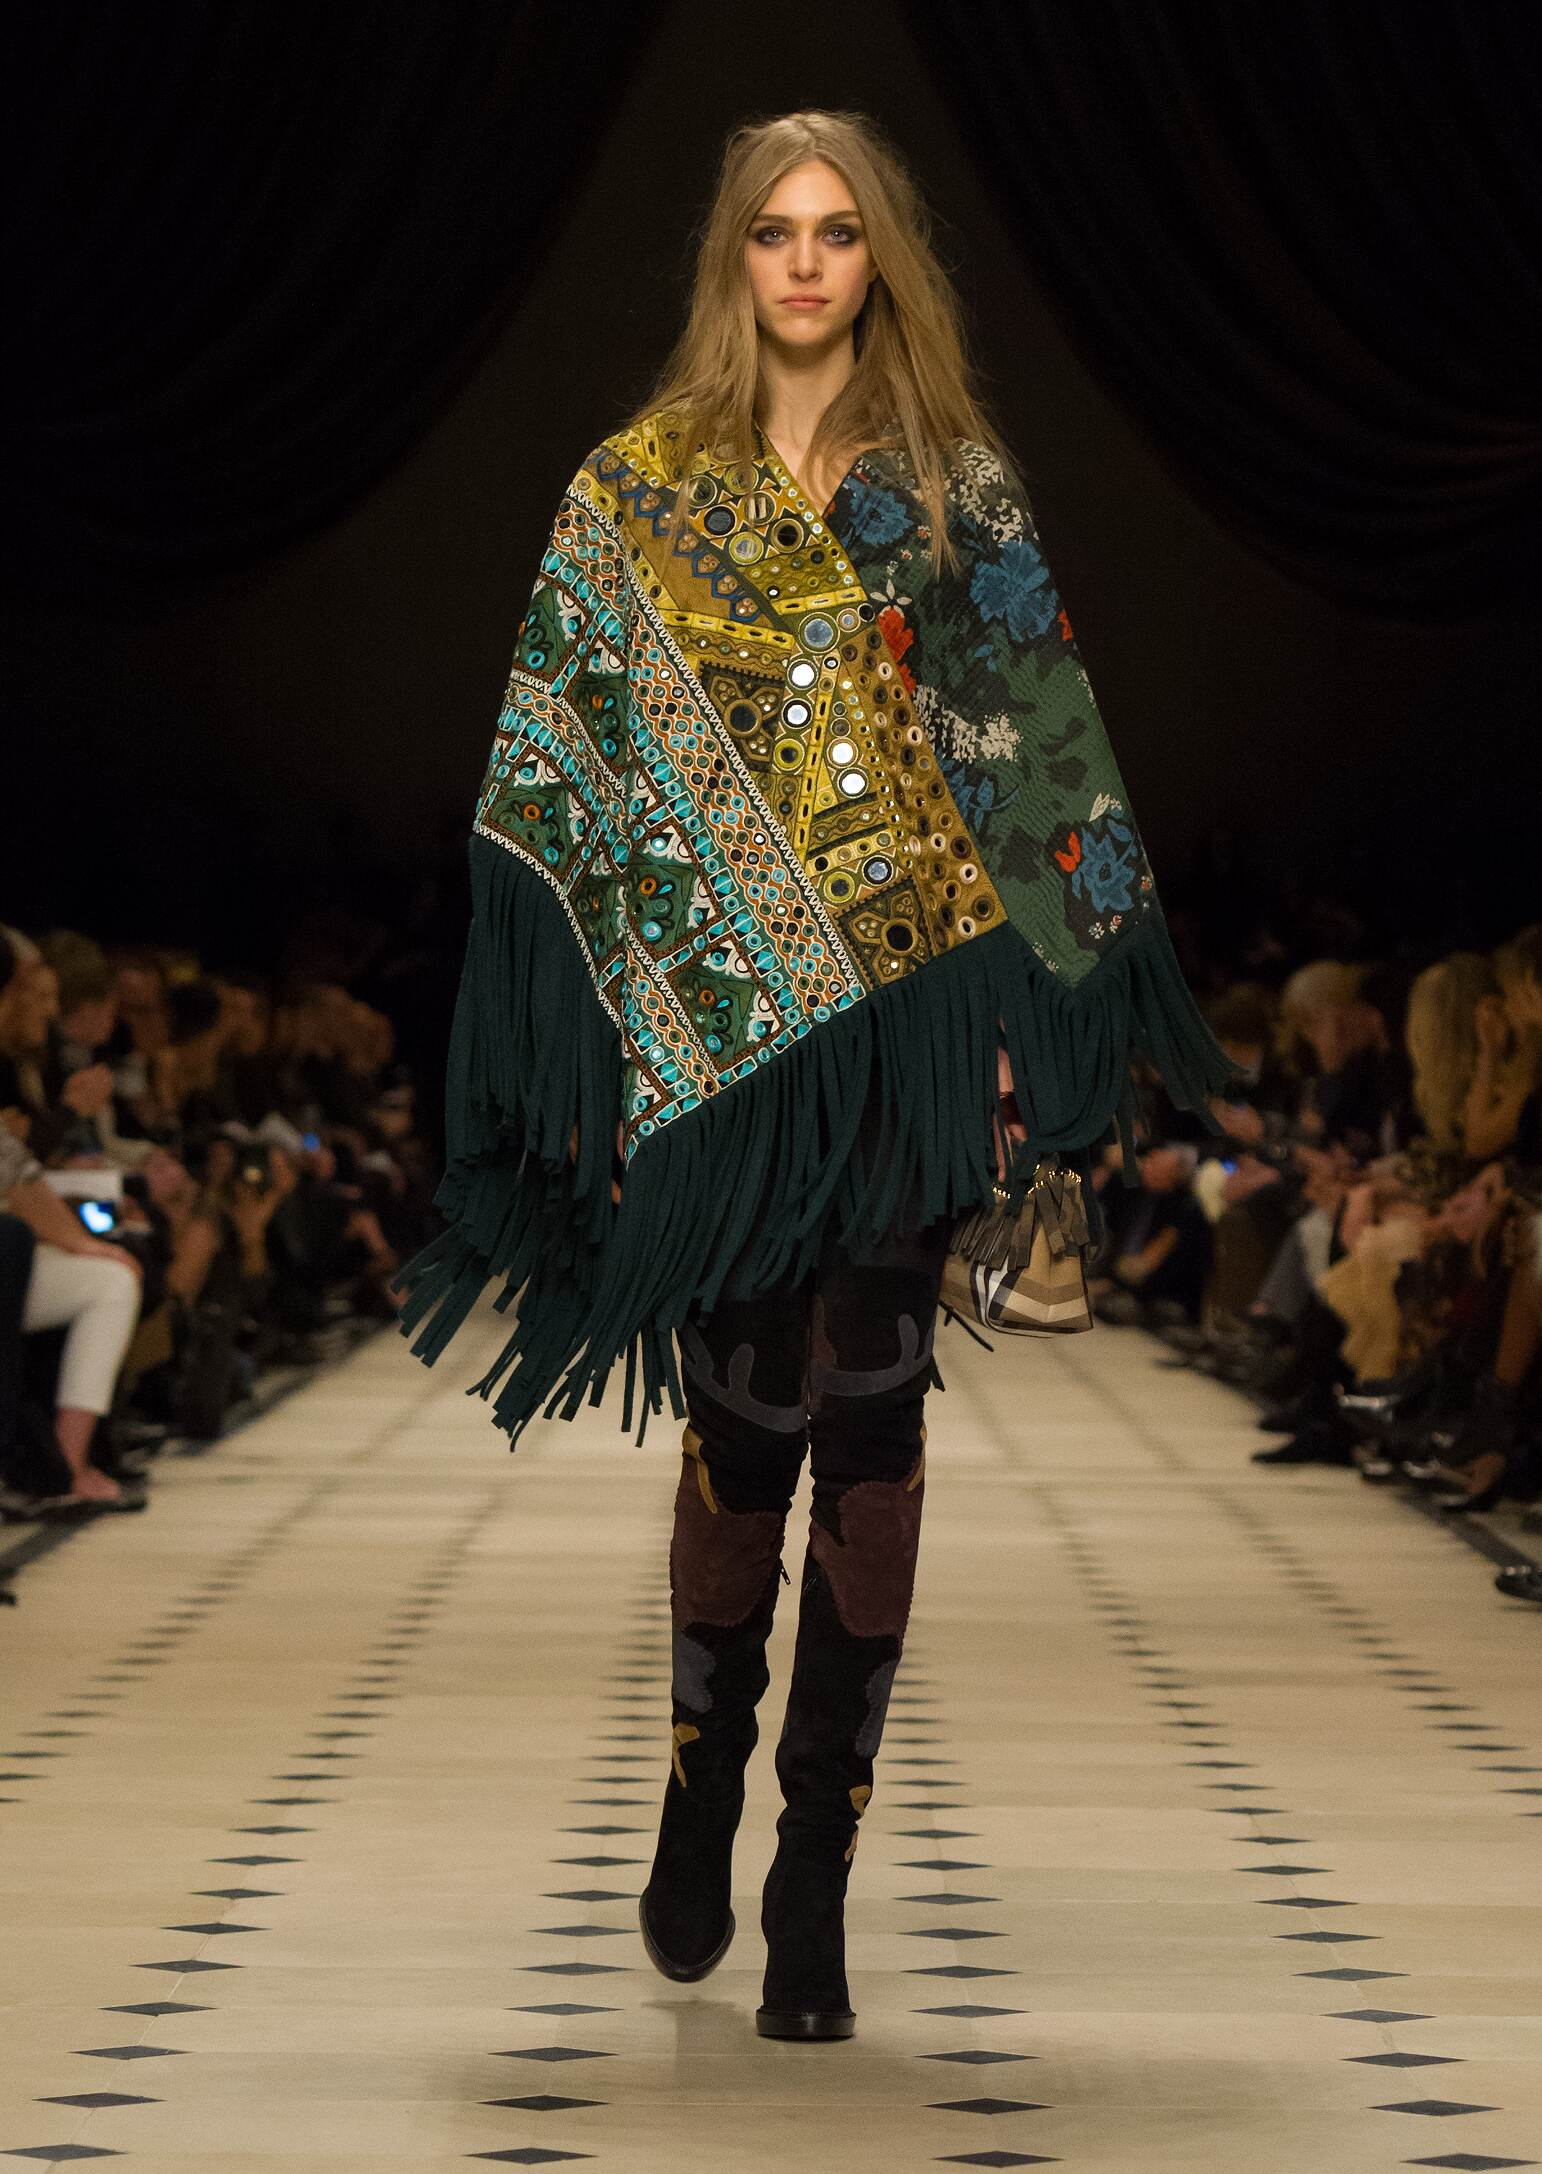 Burberry Prorsum Collection Women's FW 2015 16 Fashion Show